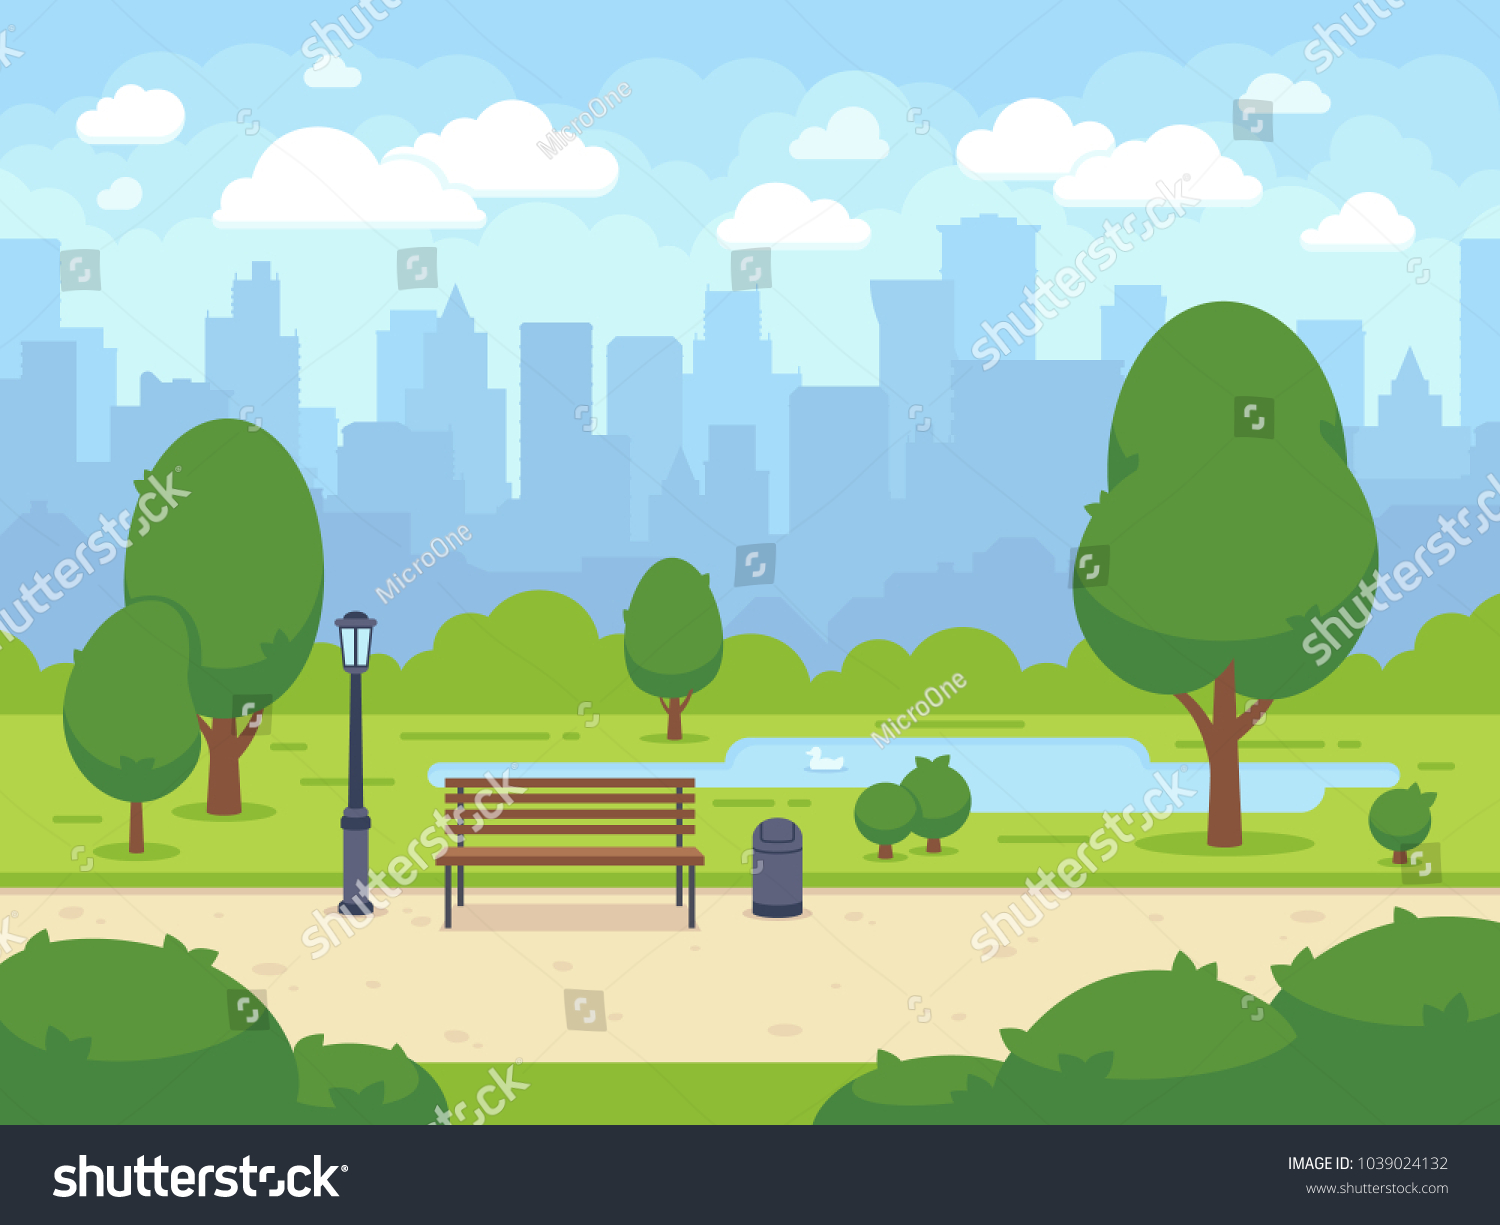 City summer park with green trees bench, walkway and lantern. Town and city park landscape nature. Cartoon vector illustration #1039024132